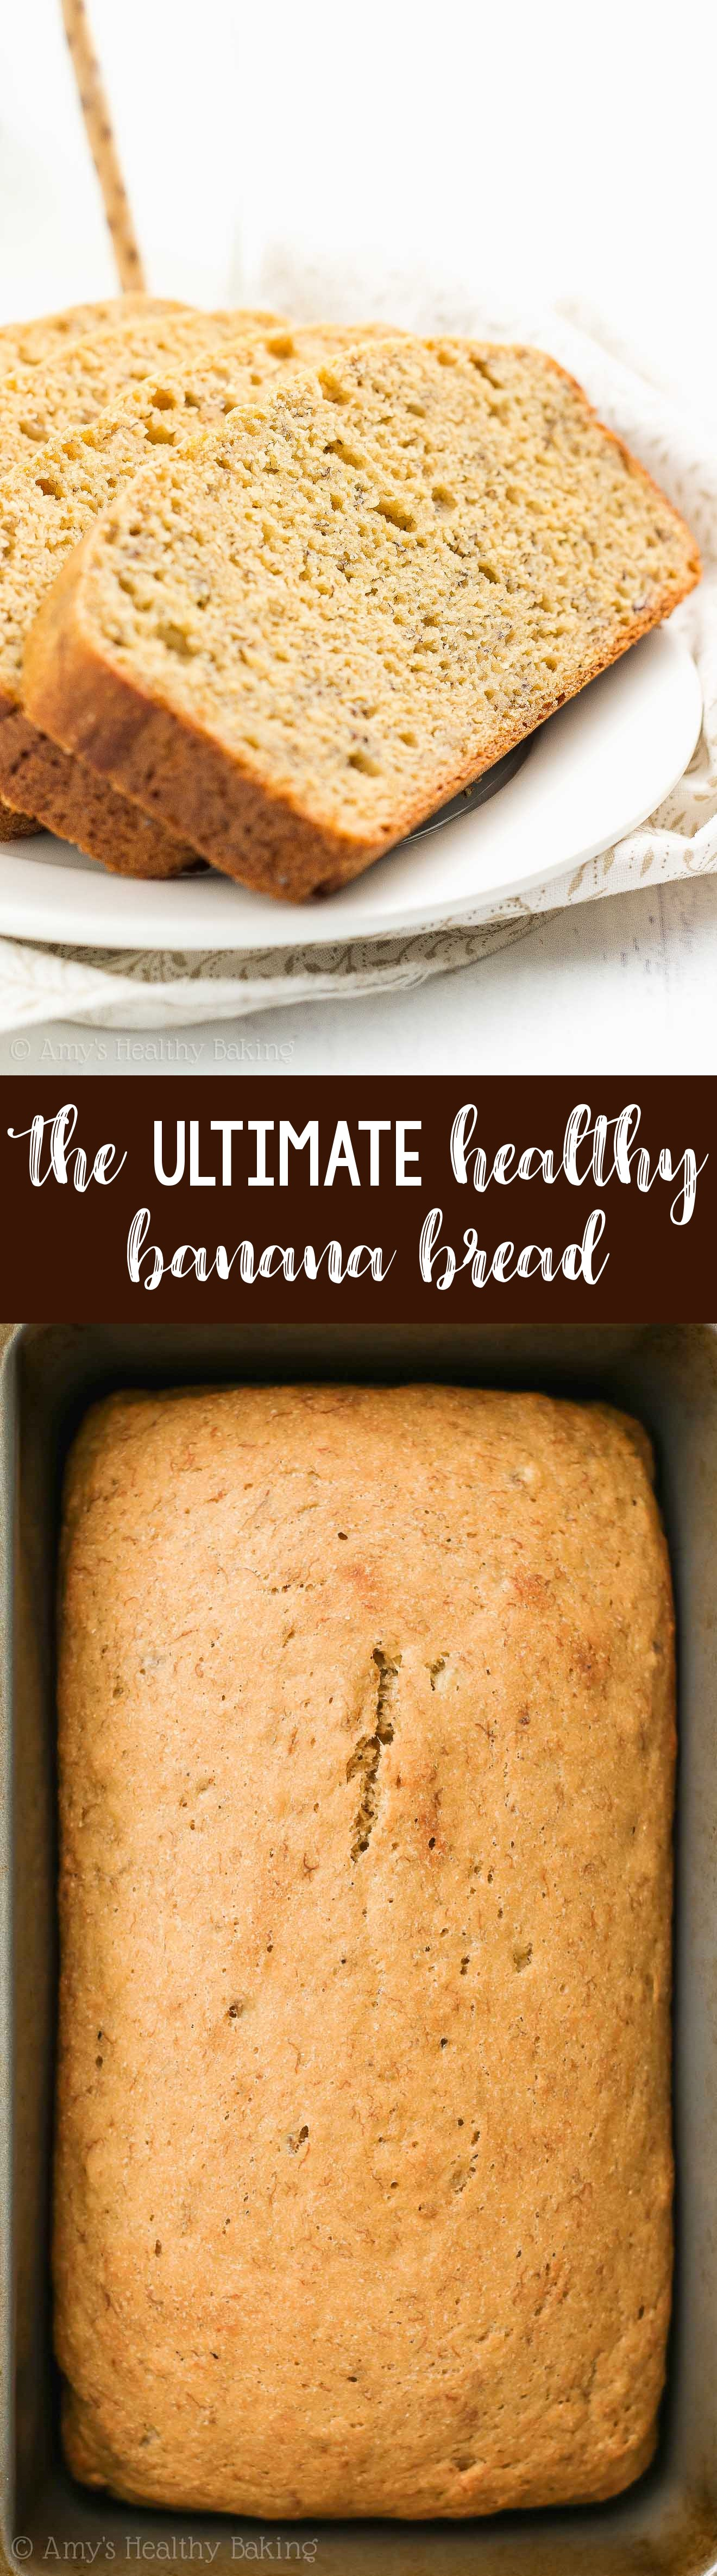 The ultimate healthy banana bread amys healthy baking the ultimate healthy banana bread recipe which is clean eating and gluten free and low forumfinder Gallery